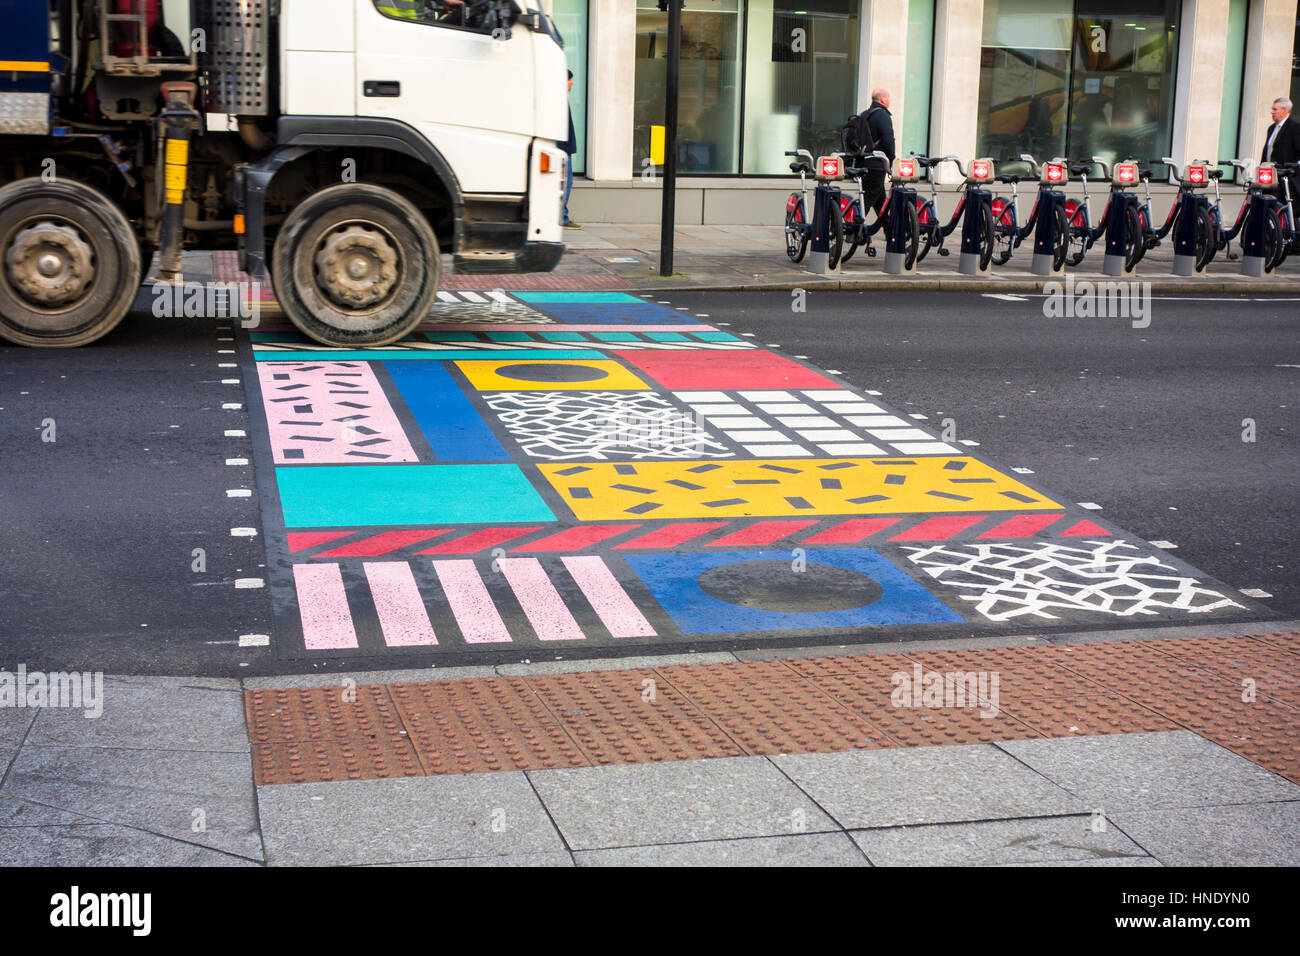 Colourful Crossings. Multicoloured pedestrian crossing by Camille Walala, London, UK - Stock Image